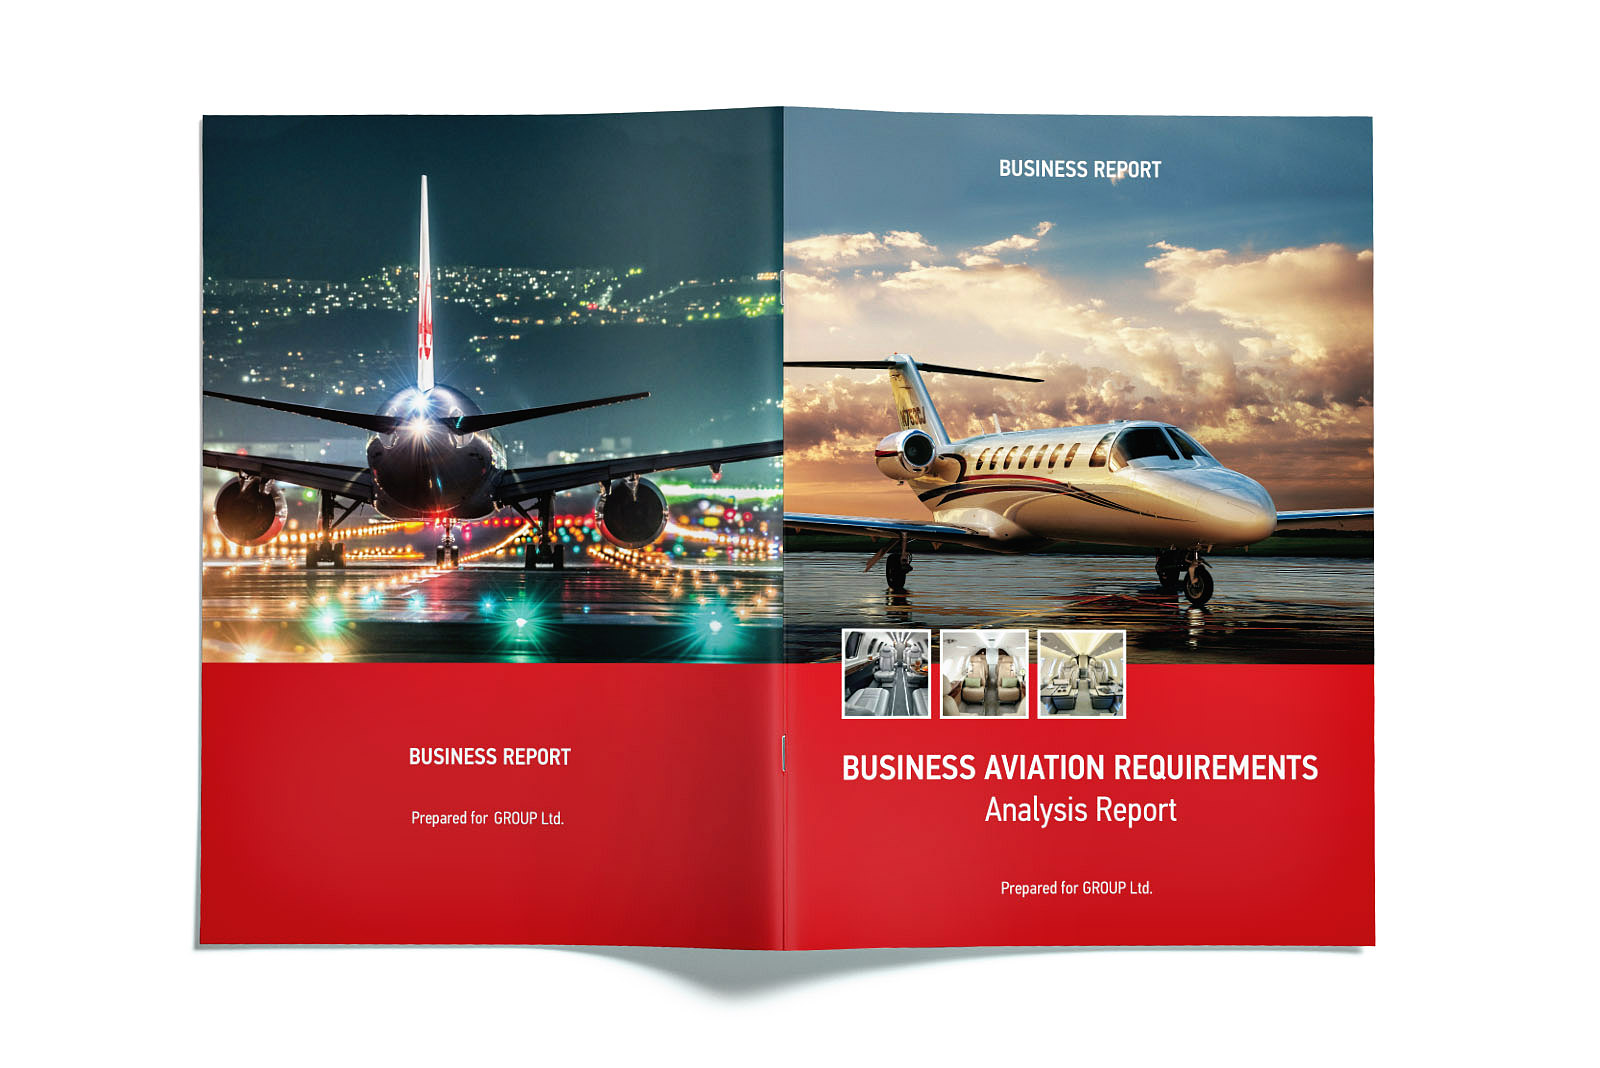 Business Aviation Requirements Analysis Report